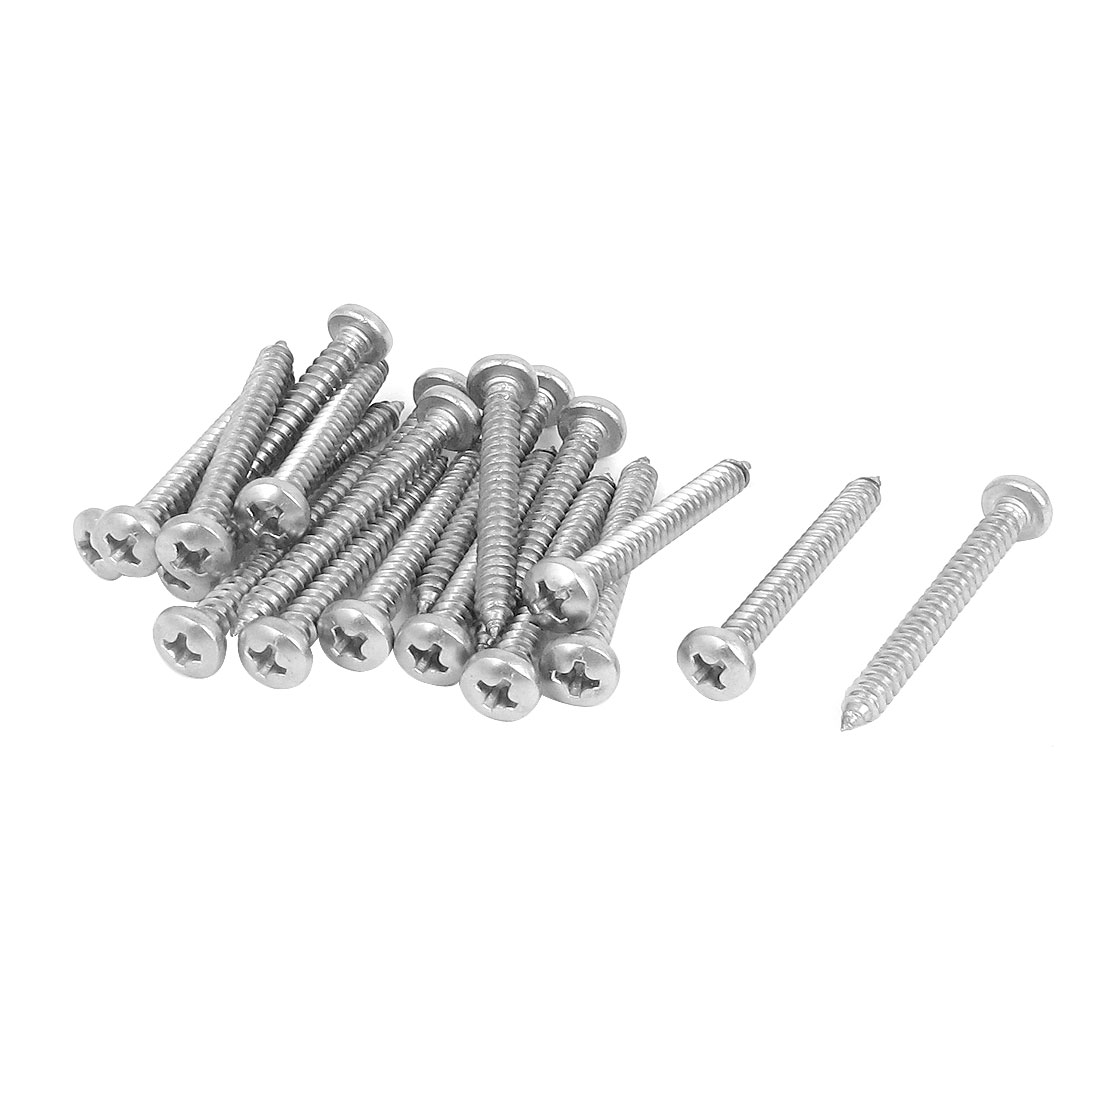 4.2mmx38mm Phillips Round Head Sheet Metal Self Tapping Drilling Screws 20pcs